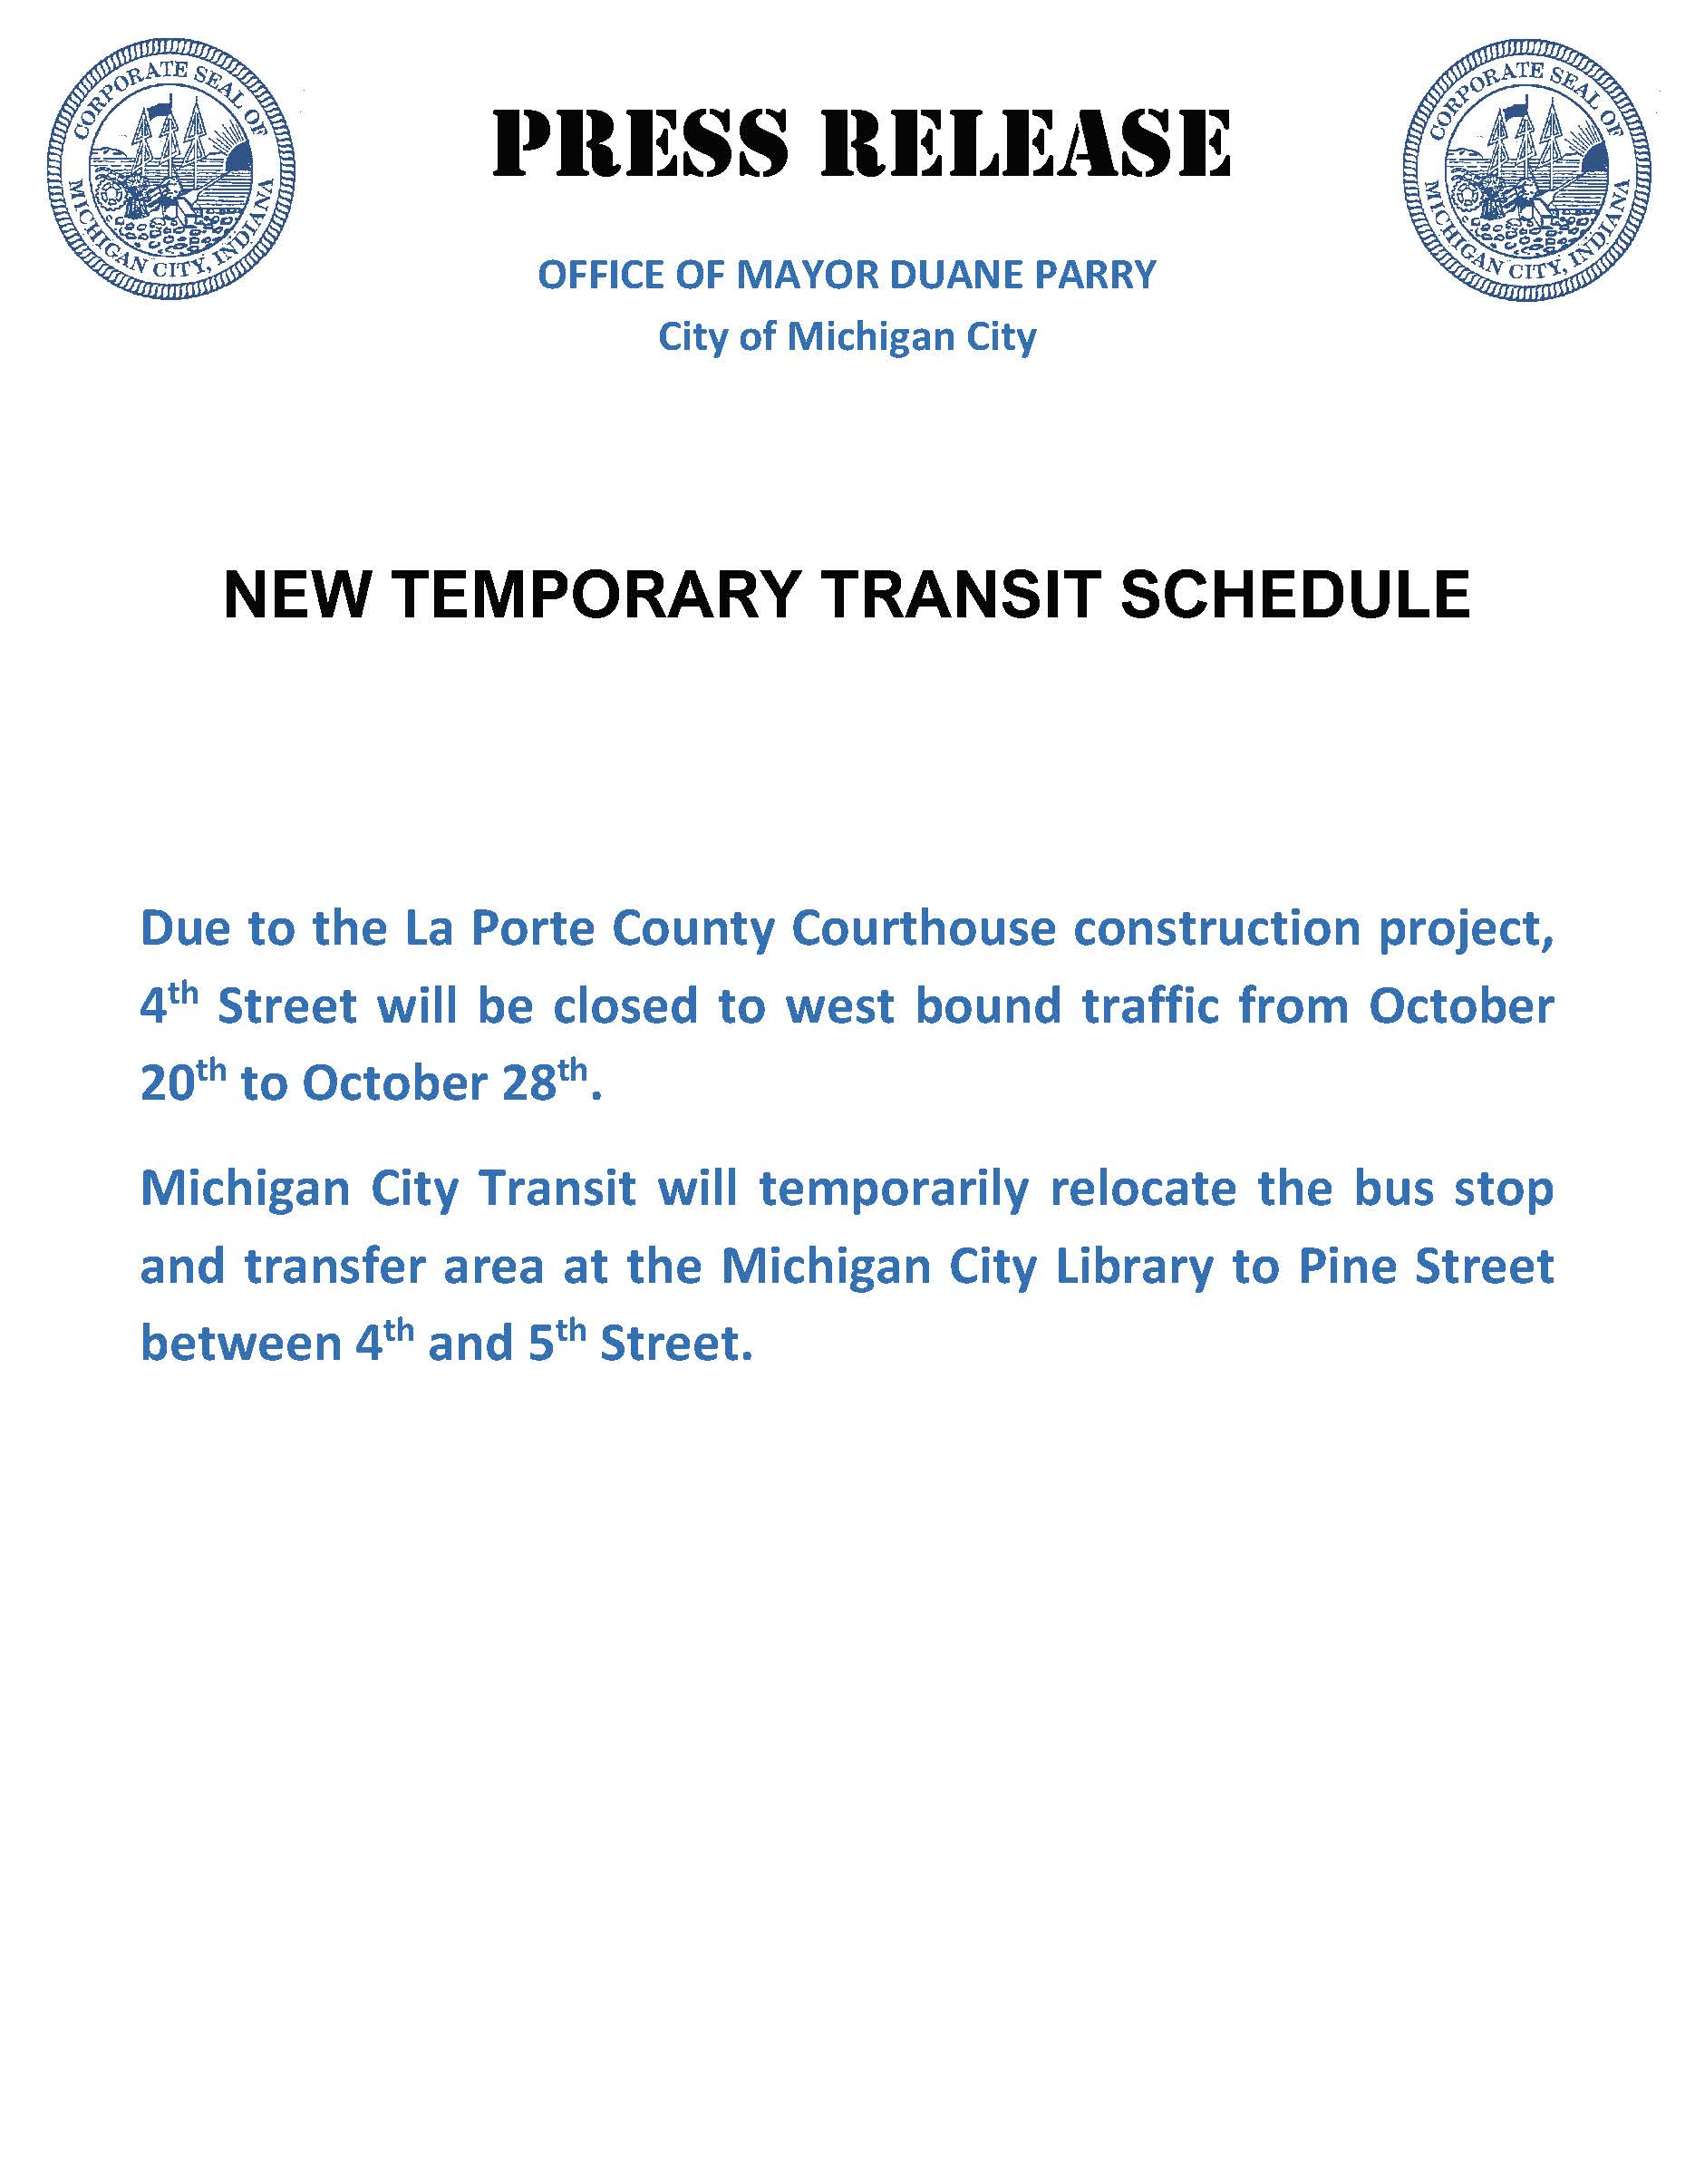 PRESS RELEASE FOR TRANSIT CHANGE